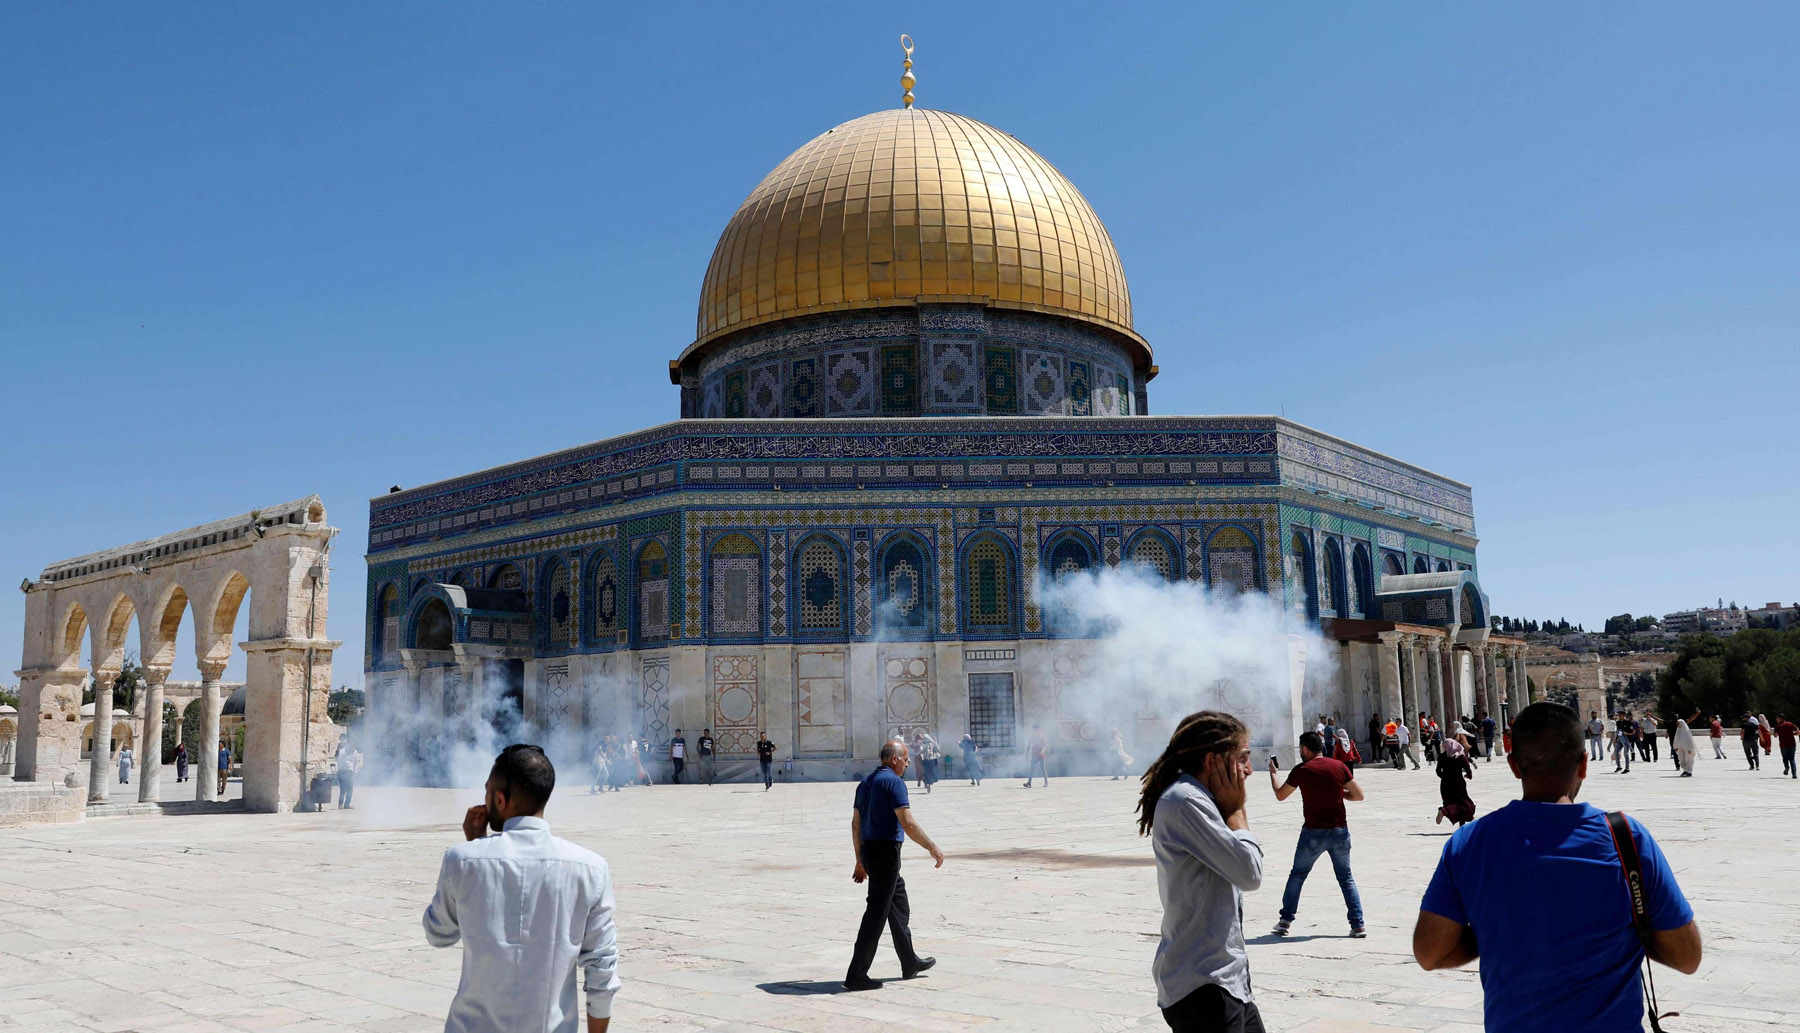 Palestinians run for cover from sound grenades fired by Israeli security forces outside the Dome of the Rock mosque in Jerusalem's Al-Aqsa Mosque compound, August 11. (AFP)